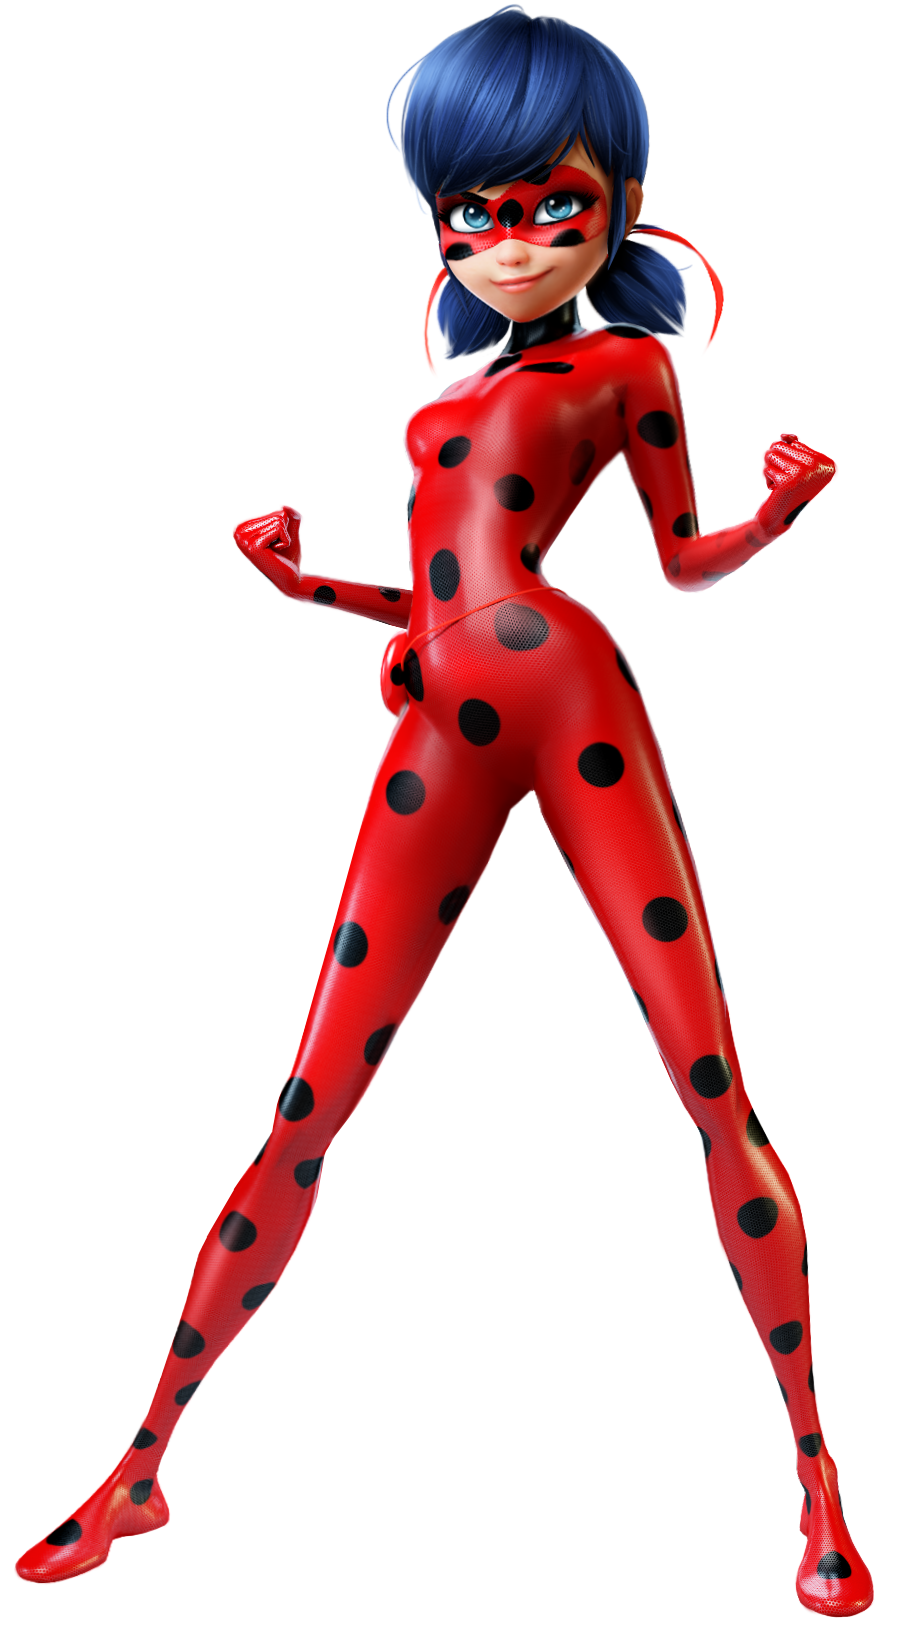 Marinette Dupain Cheng Is The Main Protagonist Of Miraculous Tales Of Ladybug Cat Noir Miraculous Ladybug Party Miraculous Ladybug Ladybug